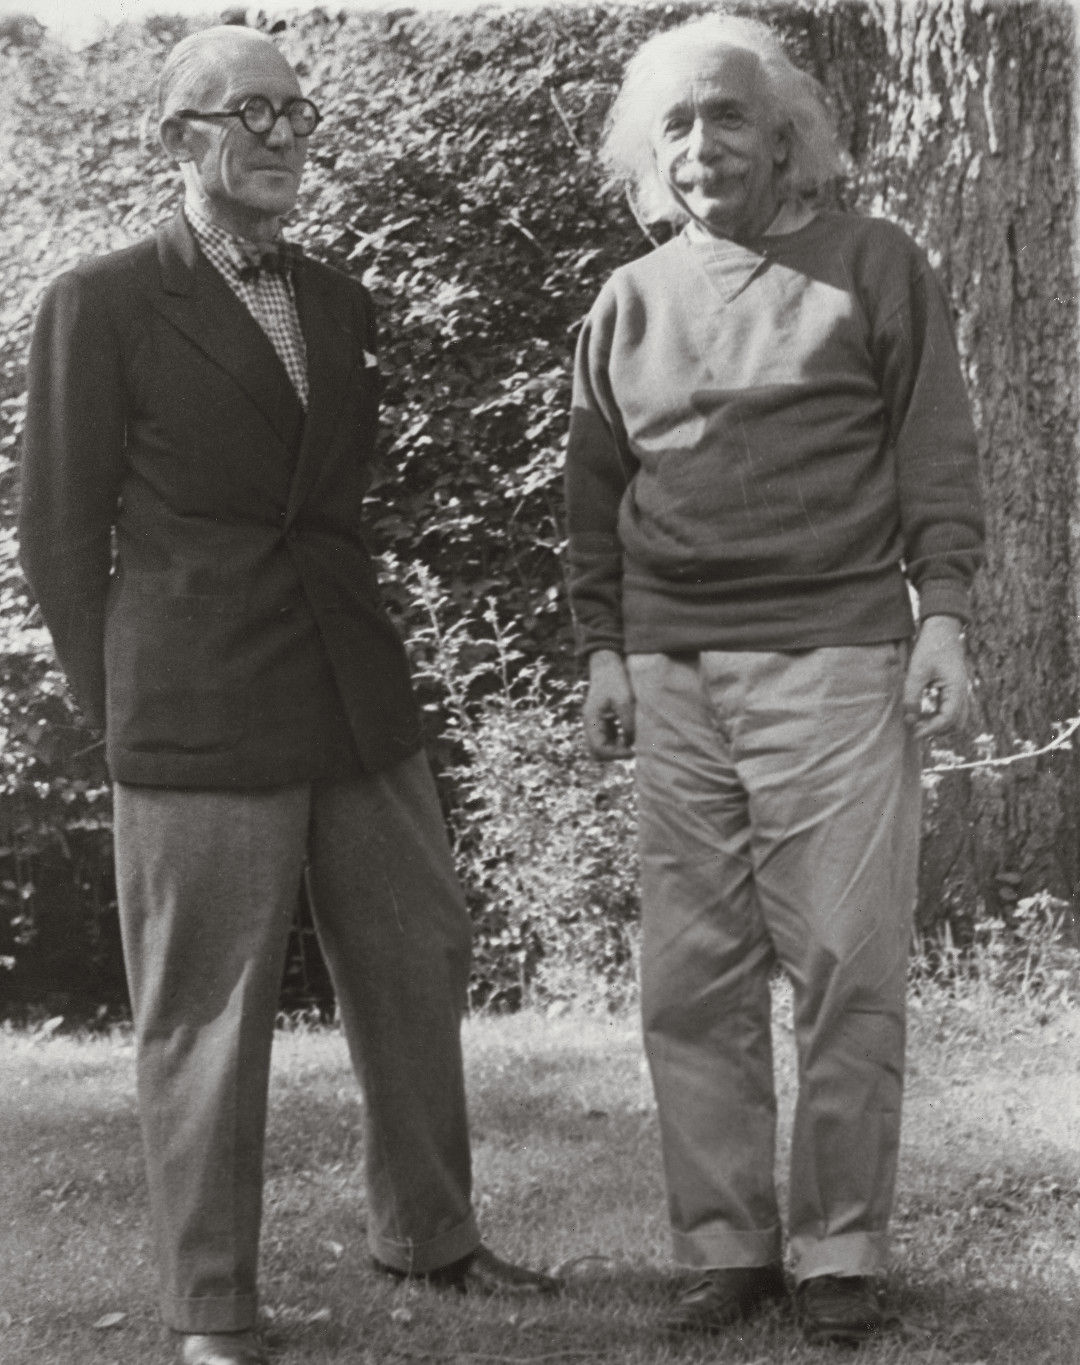 Le Corbusier with Albert Einstein in Princeton, New Jersey, 1946. Picture credit: courtesy Fondation Le Corbusier, Paris. As reproduced in Le Corbusier Le Grand